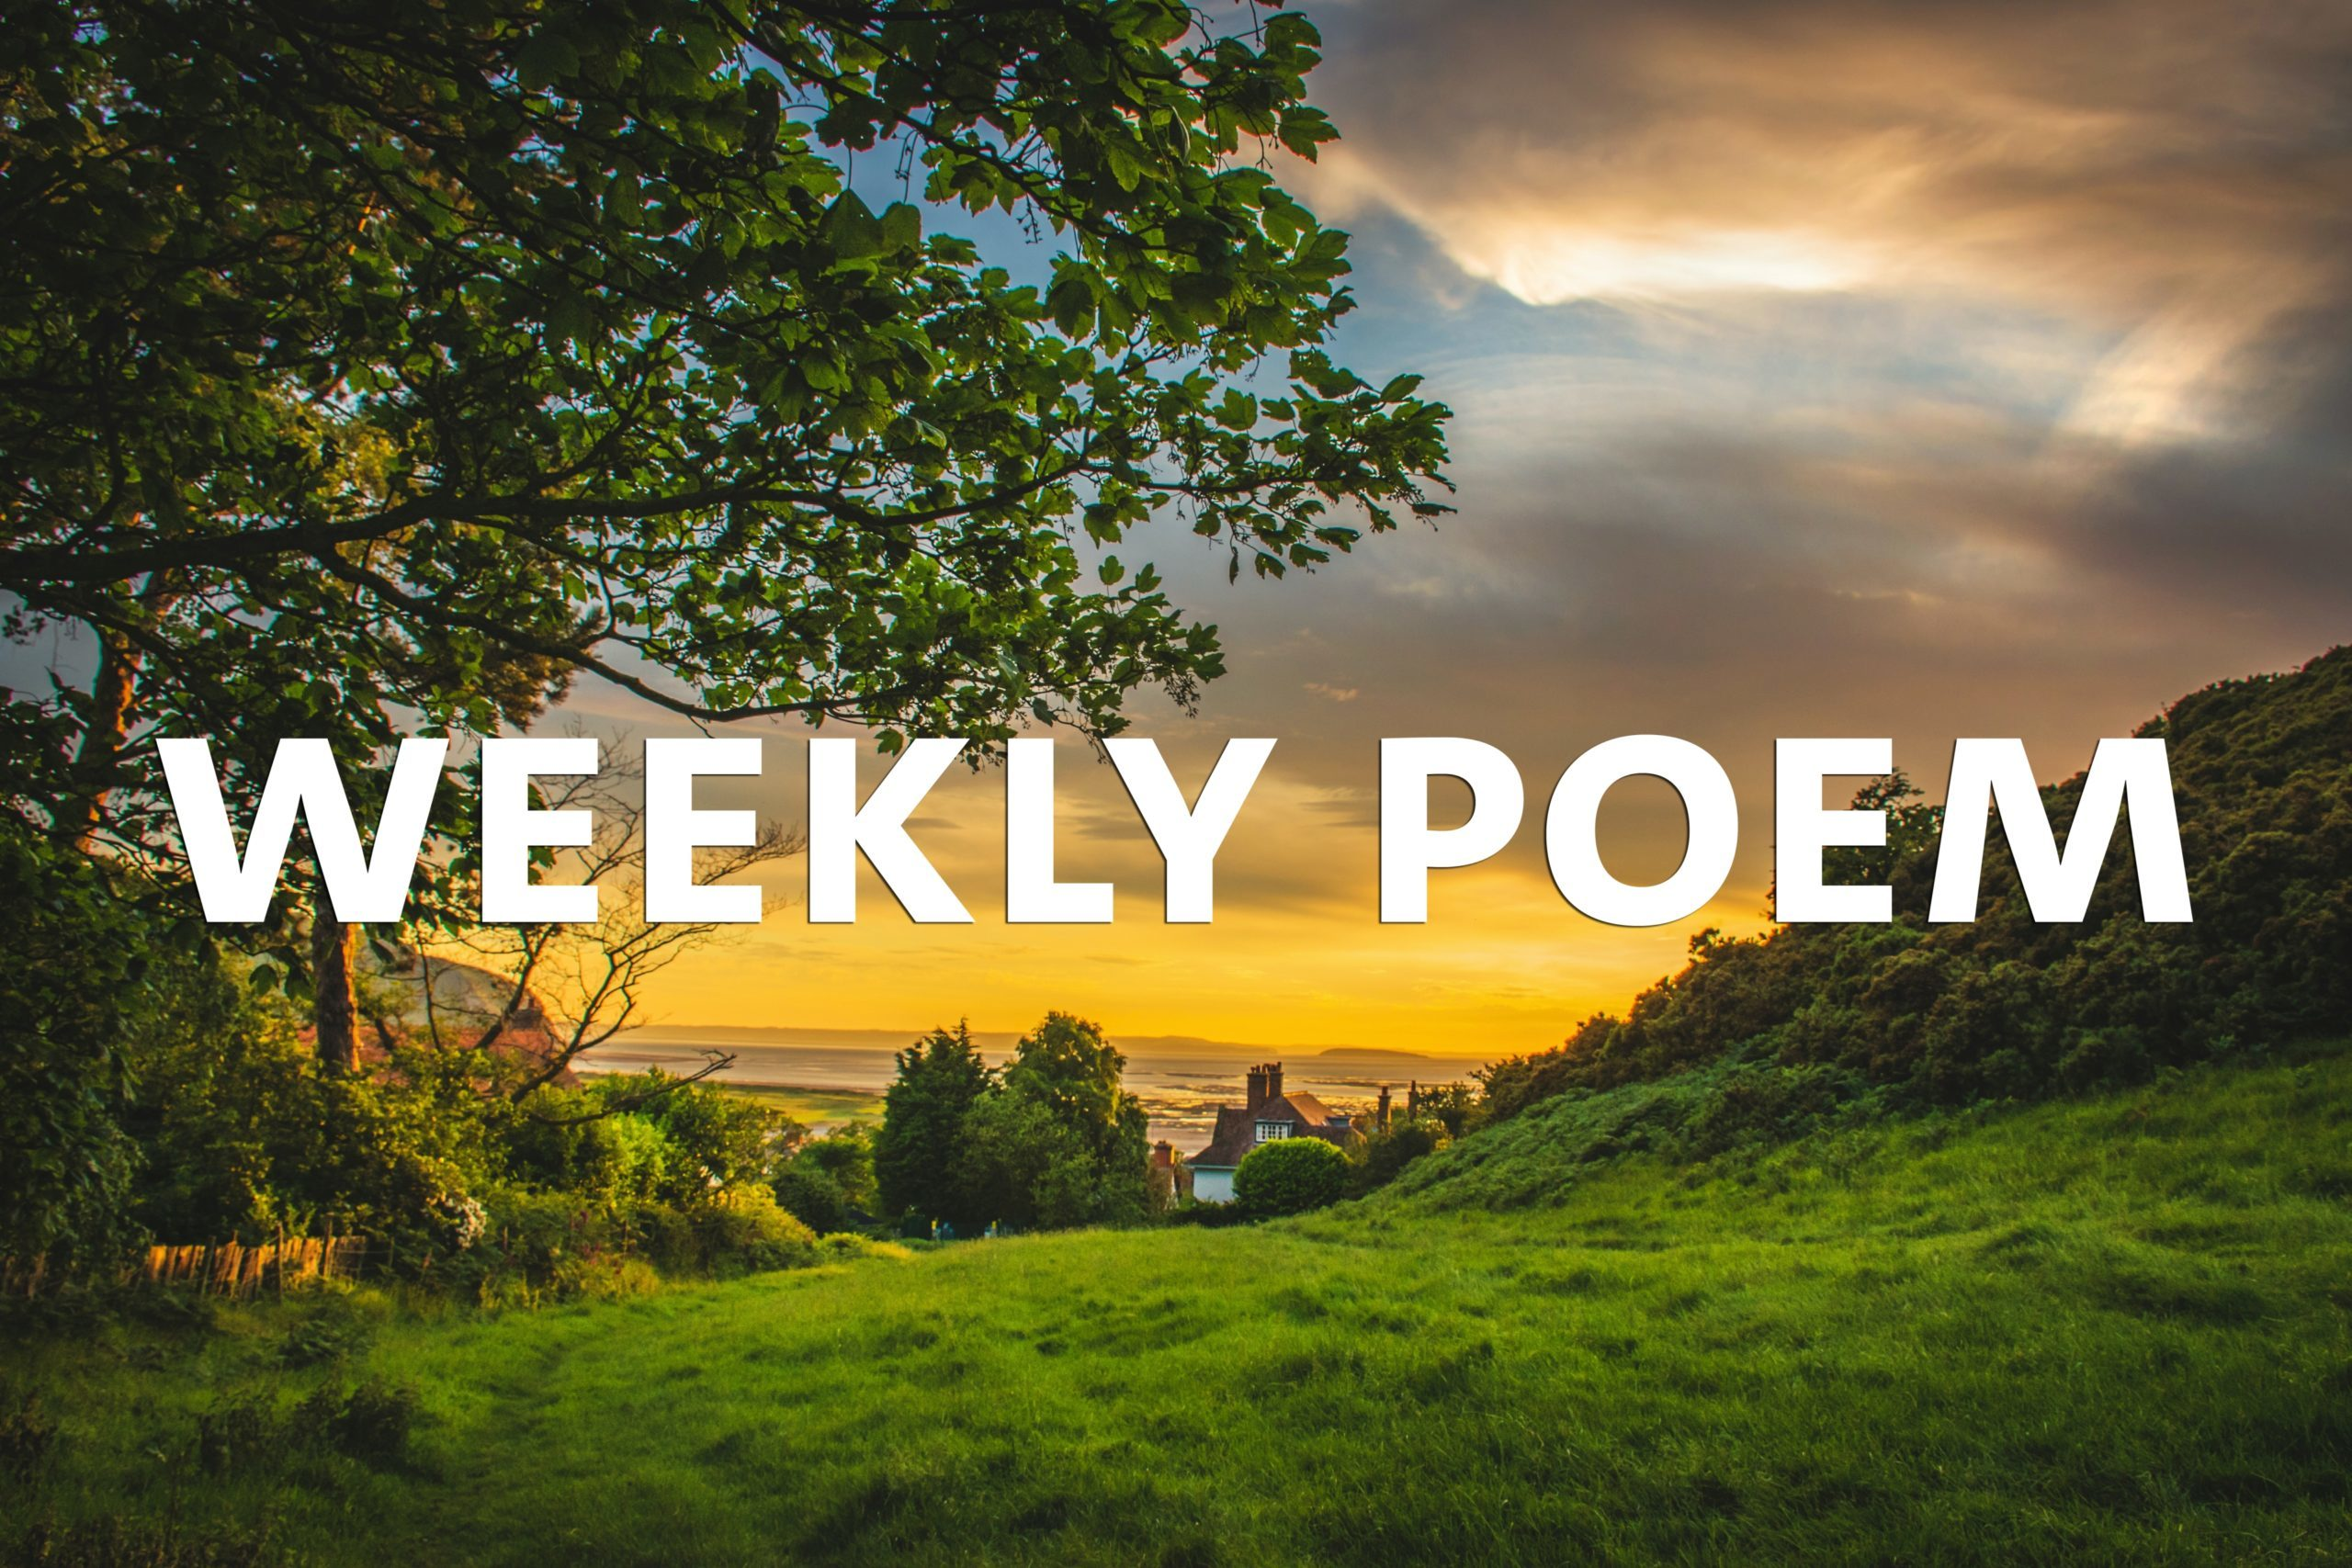 """a sunny summer evening of a hill with some houses and the ocean in the background, the words """"WEEKLY POEM"""" are in the centre of the image in all caps"""